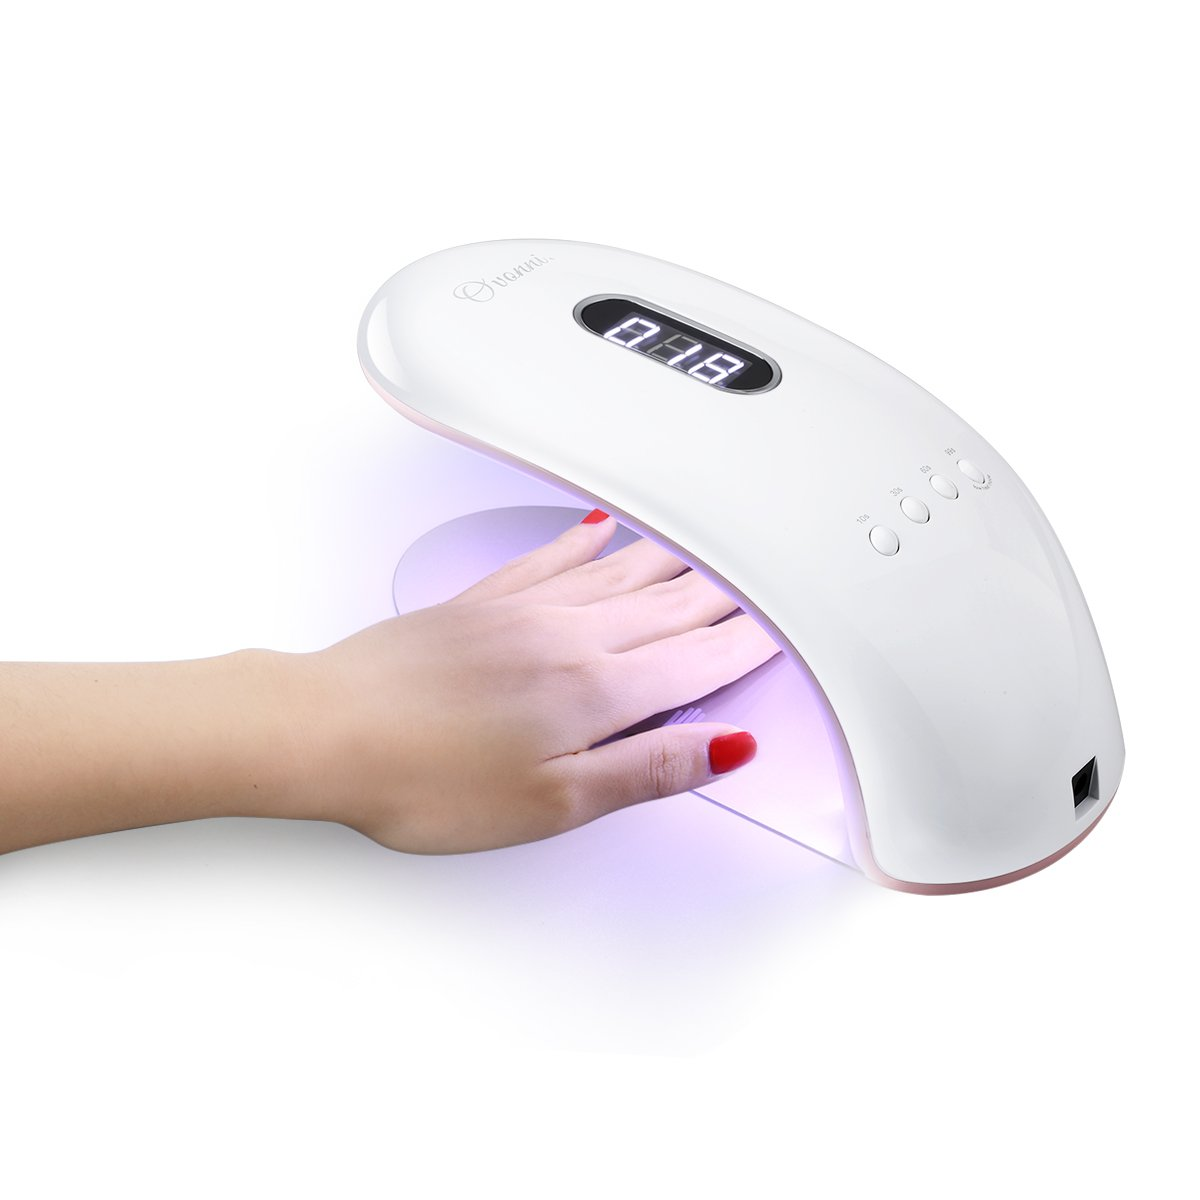 Ovonni LED UV Nail Dryer, 36W Nail Lamp with 4 Timer Setting 10s/30s/60s/99s for All Gel Polishes, Automatic Sensor For Gel Nails and Toe Nail Curing, White